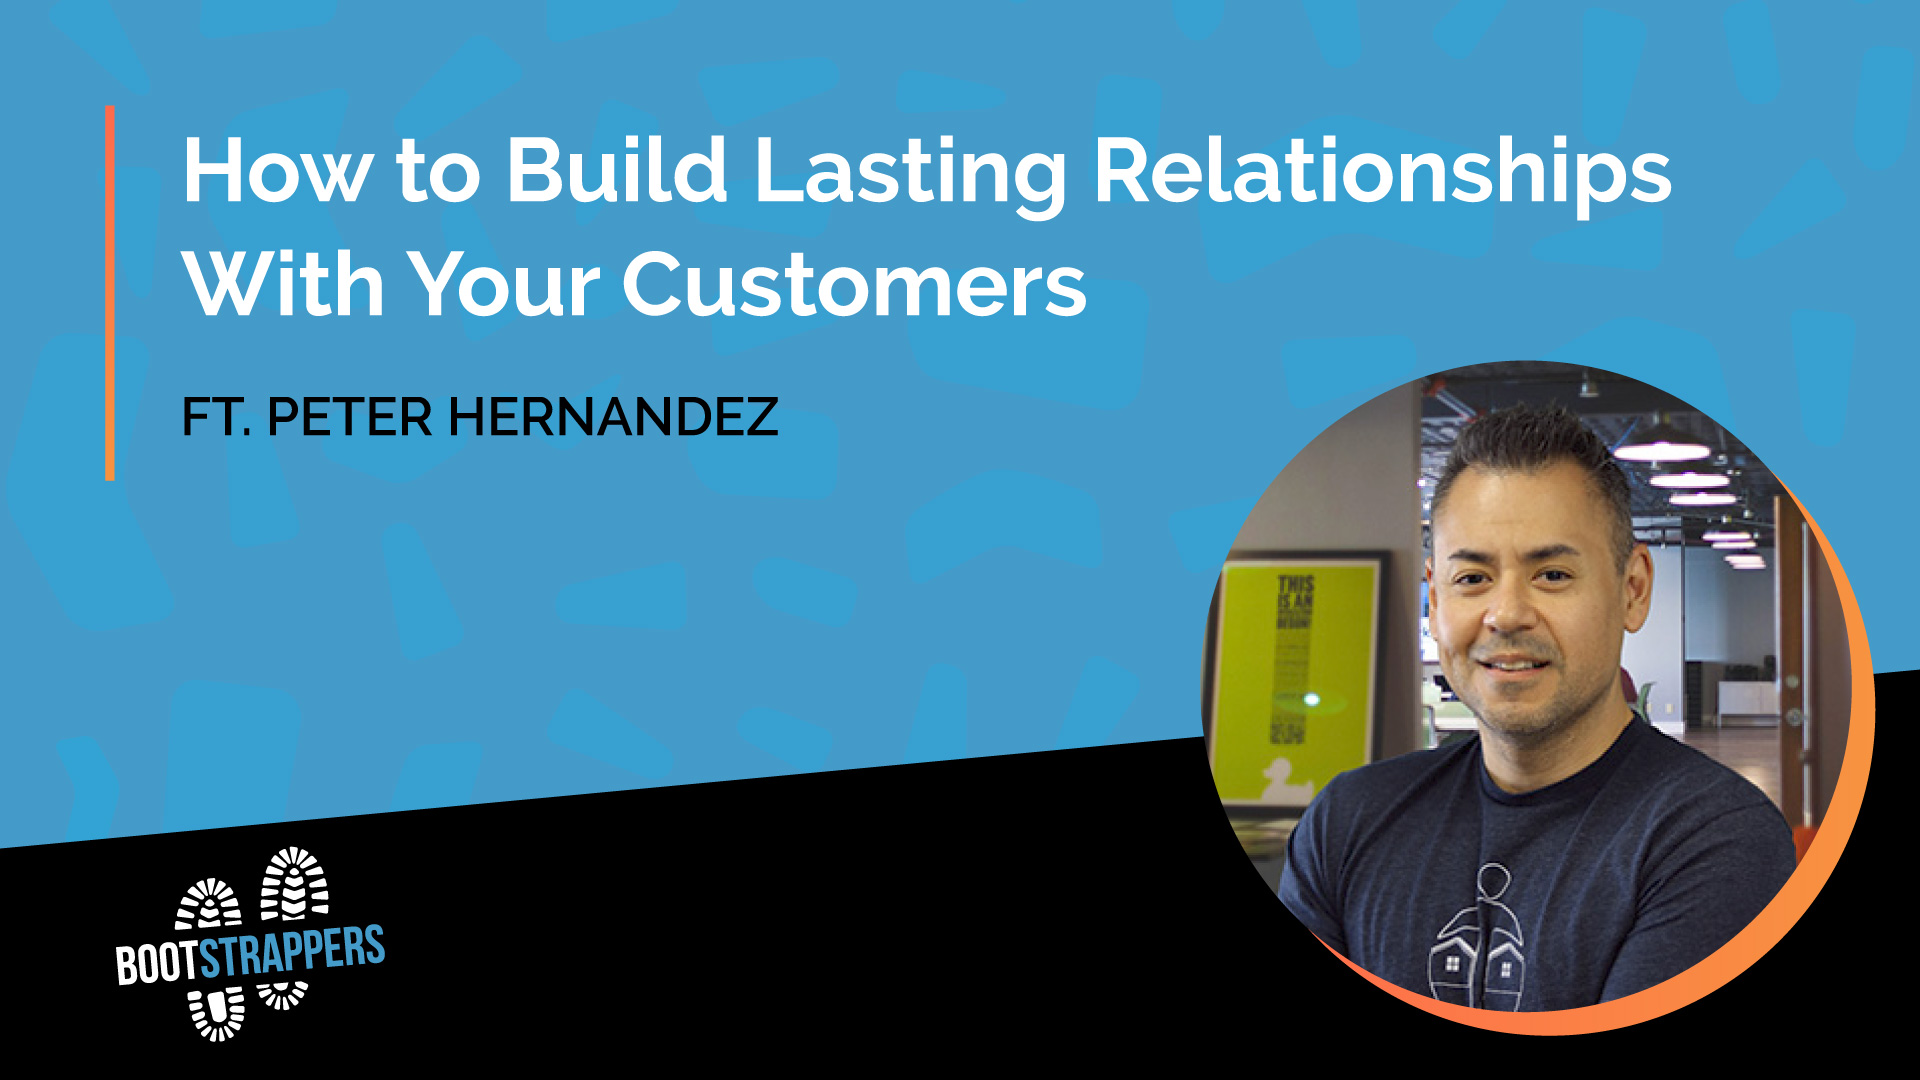 anequim-bootstrappers-how-to-build-lasting-relationships-with-your-customers